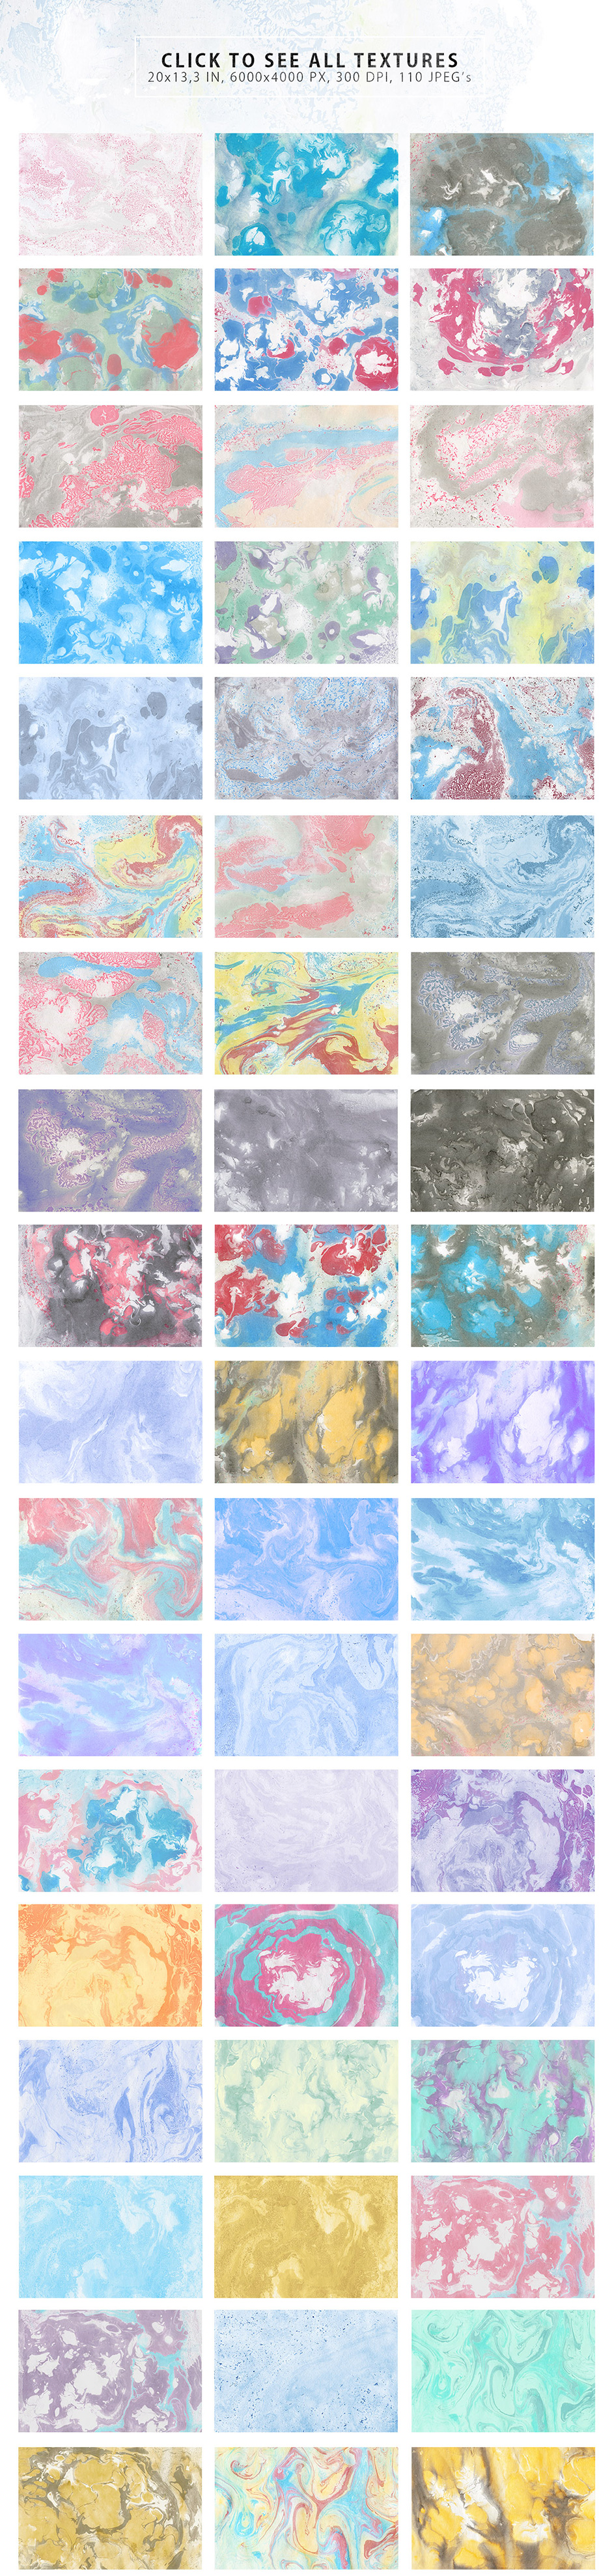 1468409869-8184-artistic-bundle-may-k4